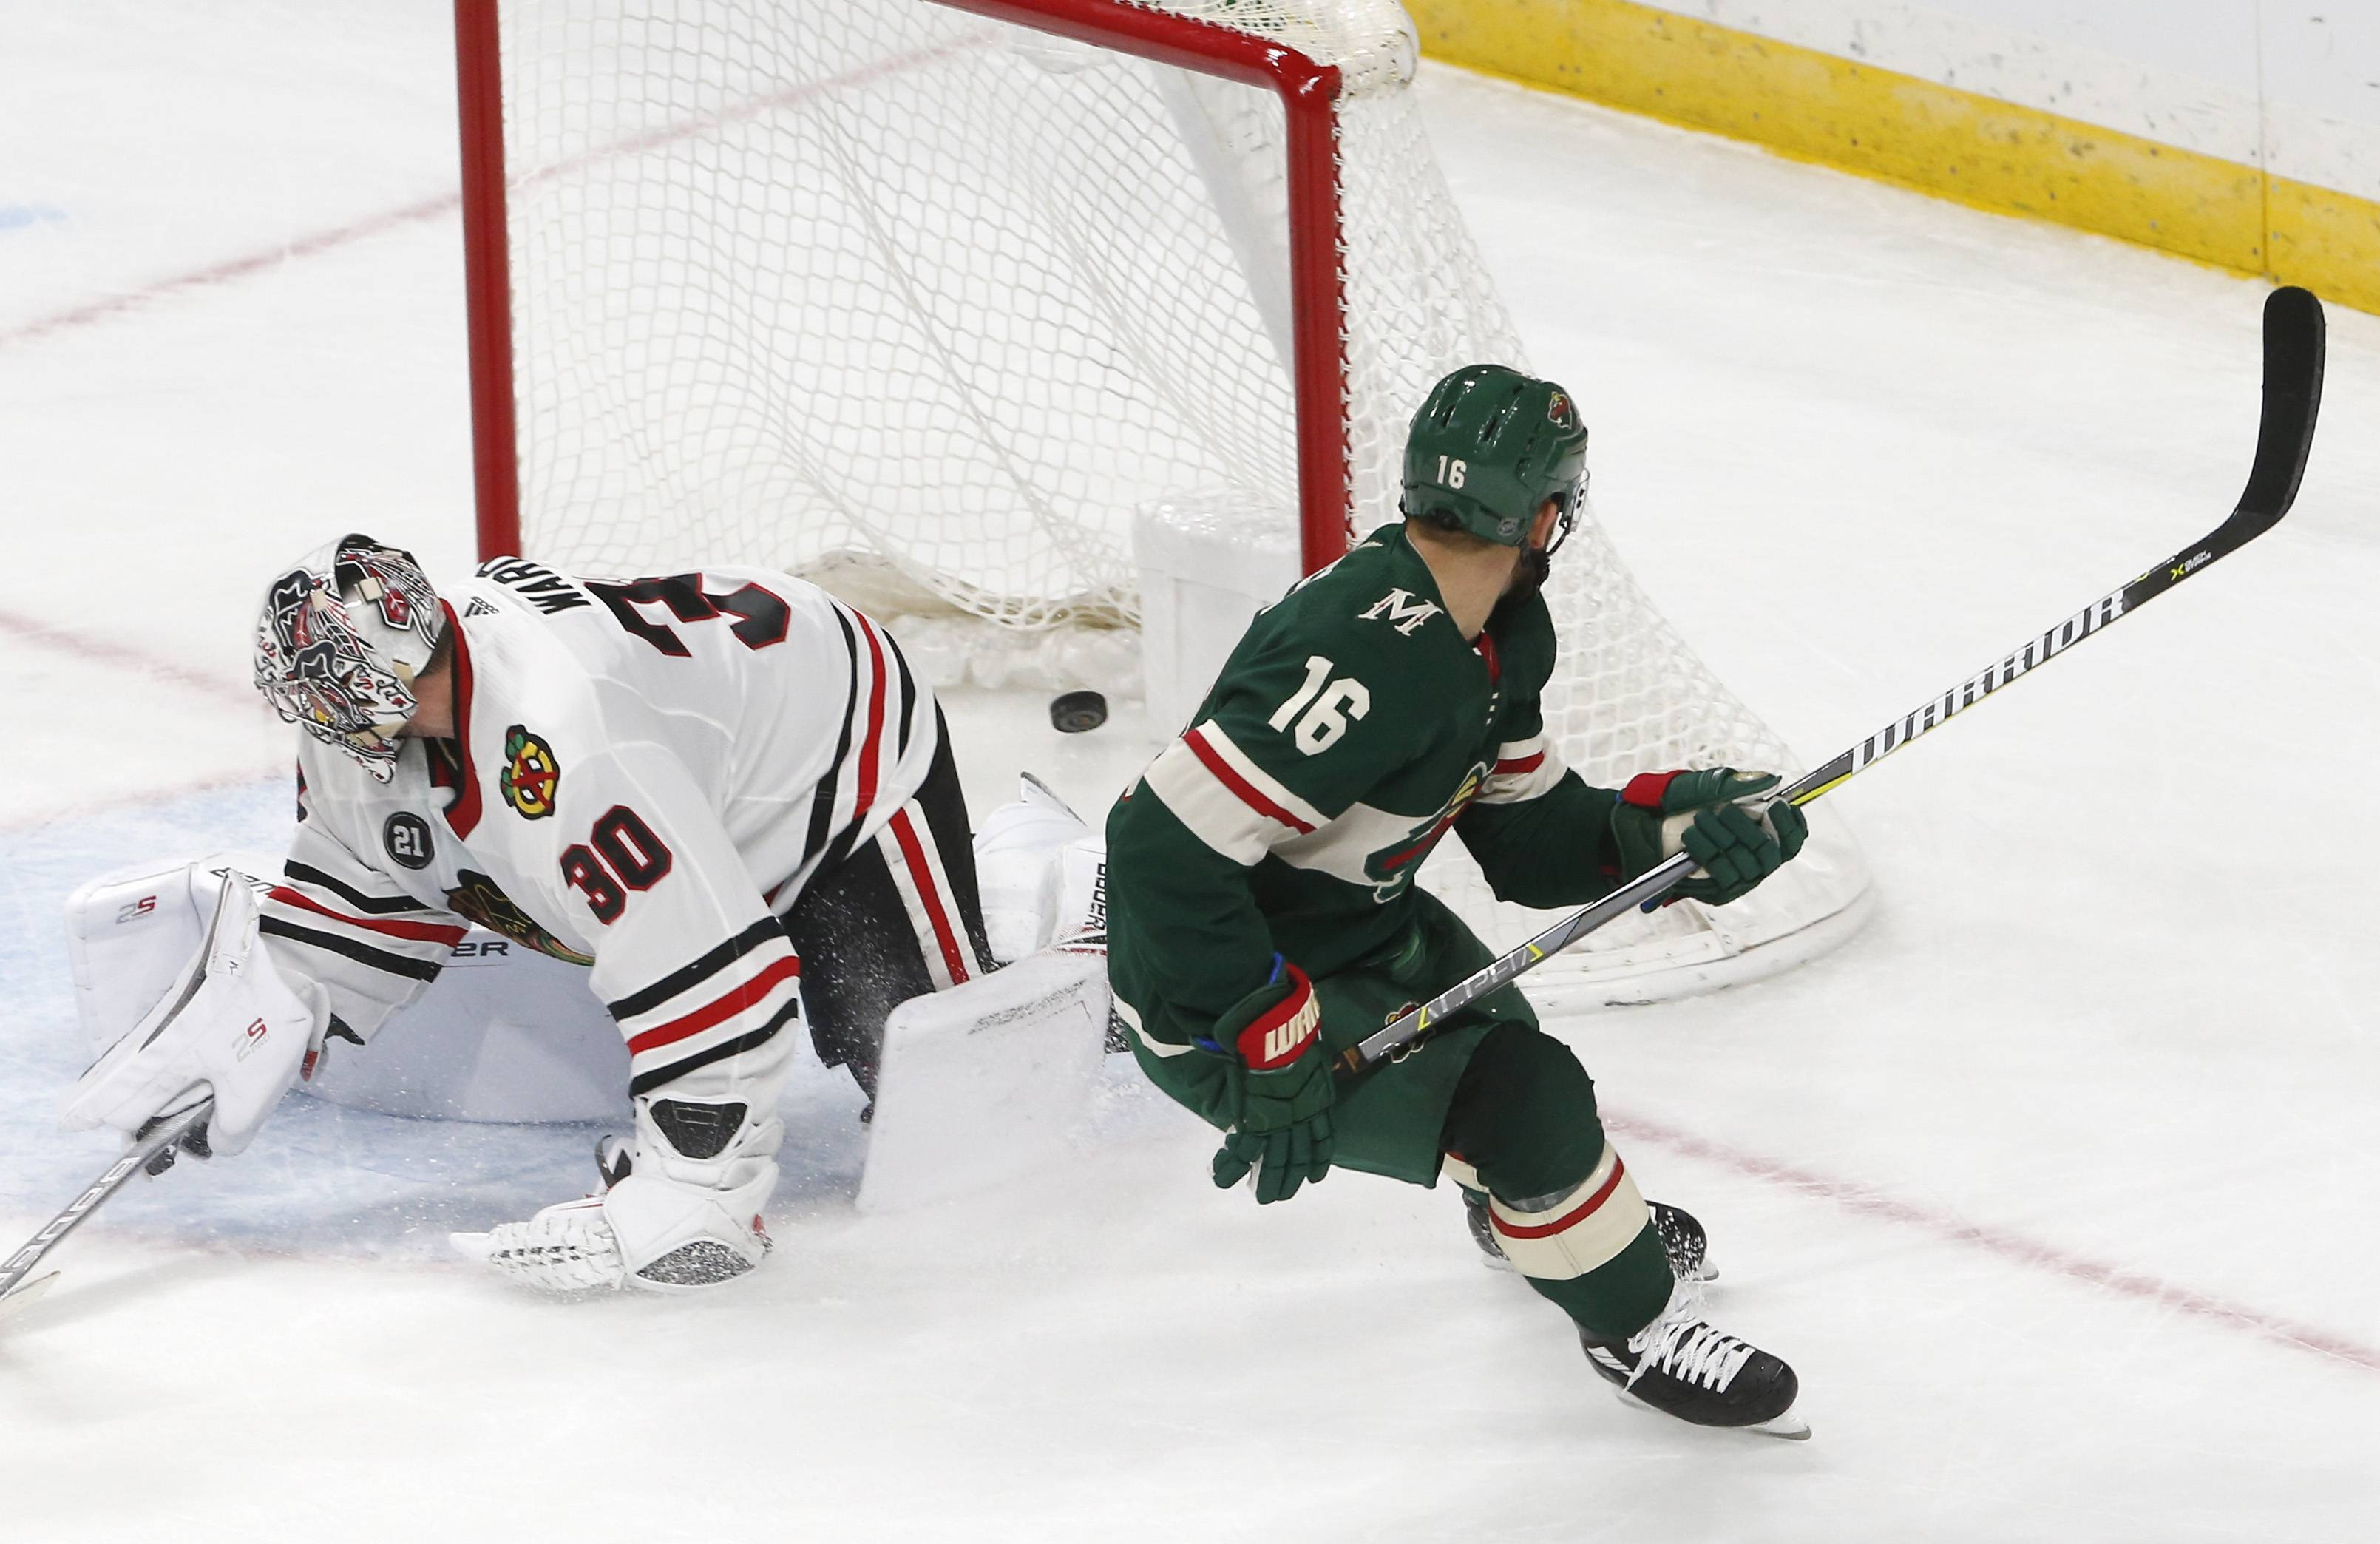 Minnesota Wild's Jason Zucker, right, watches his overtime goal against Chicago Blackhawks goalie Cam Ward in an NHL hockey game Thursday in St. Paul, Minn. The Wild won 4-3. It was Zucker's second goal of the game.